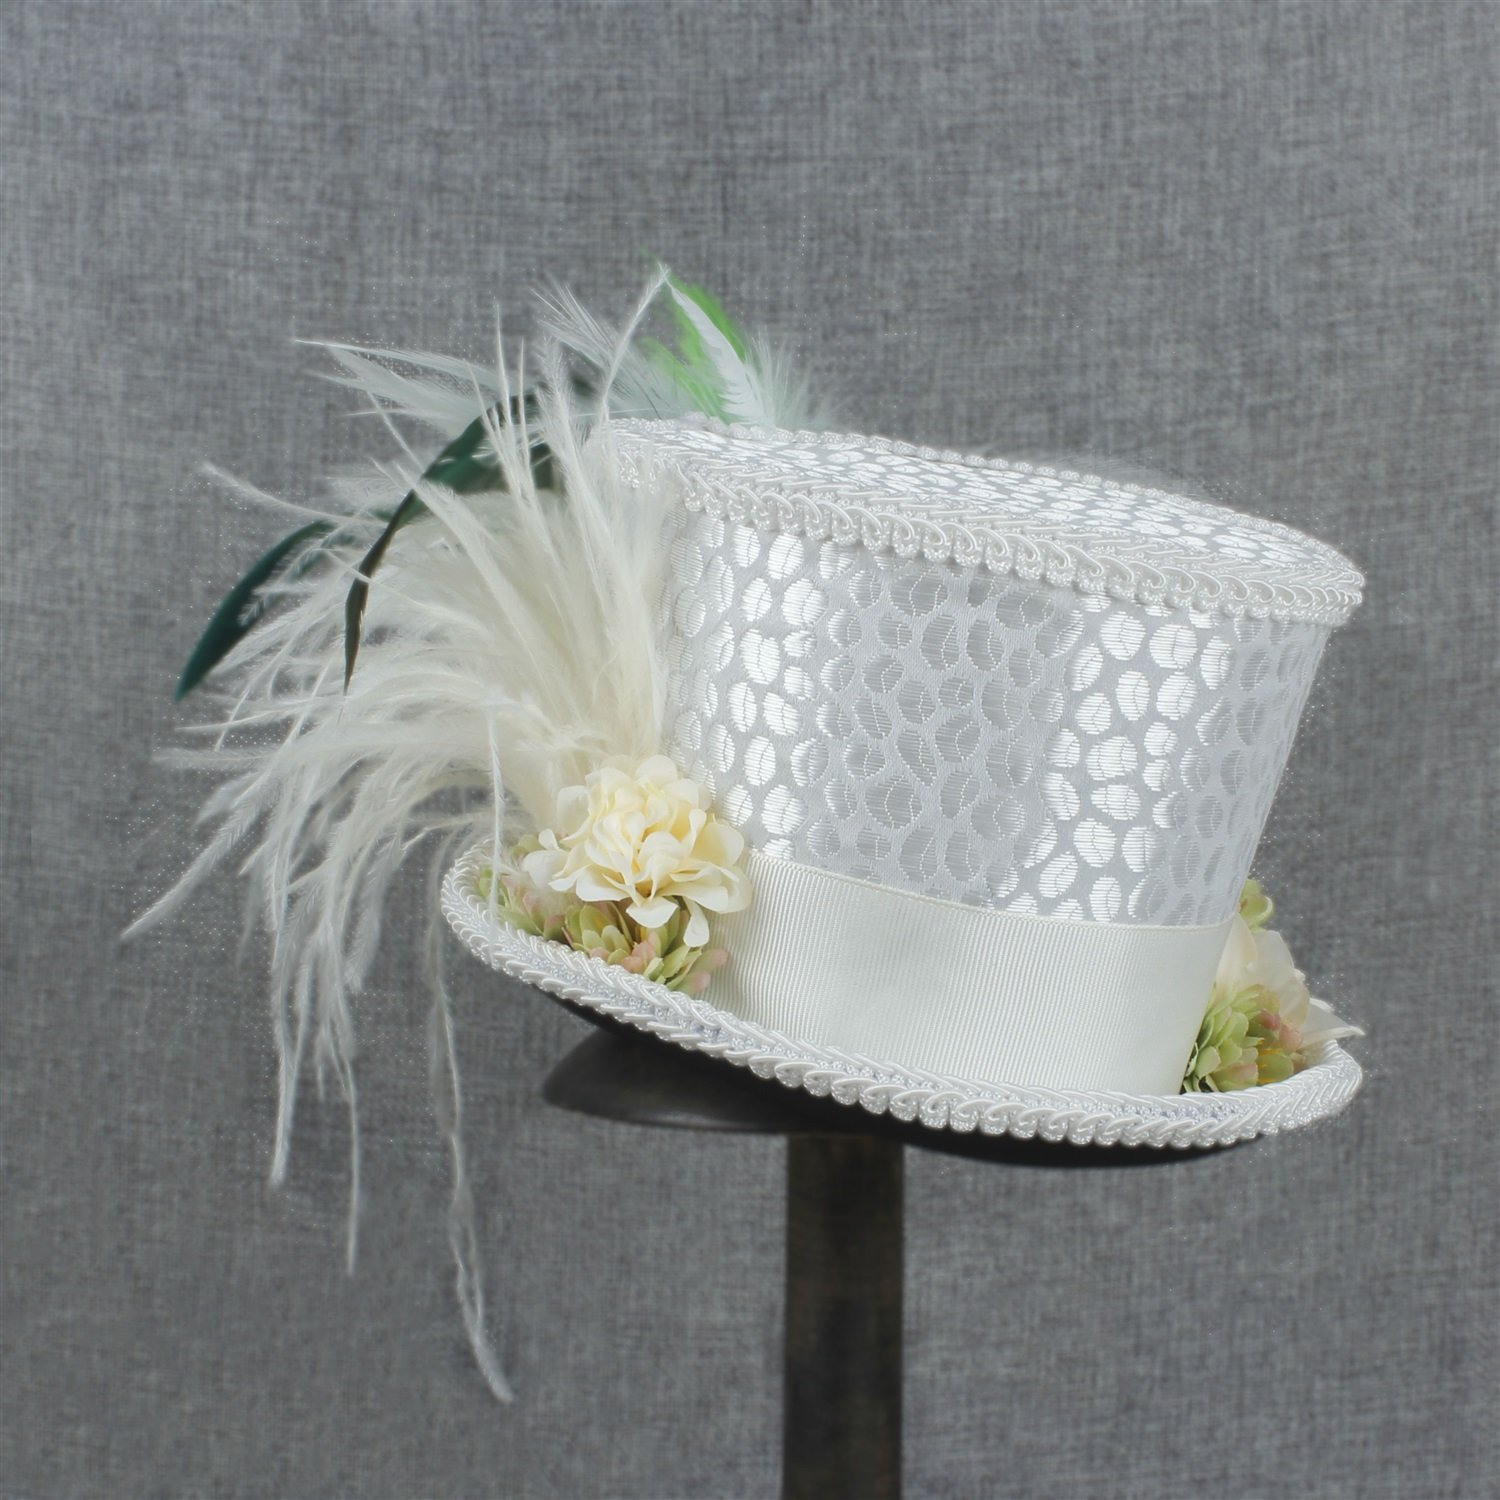 LL Women's White Mini Top Hat Tea Hat Mad Hatter Tea hat, Bridal Hat, Kentucky Derby hat (Color : White, Size : 25-30cm) by LL (Image #5)